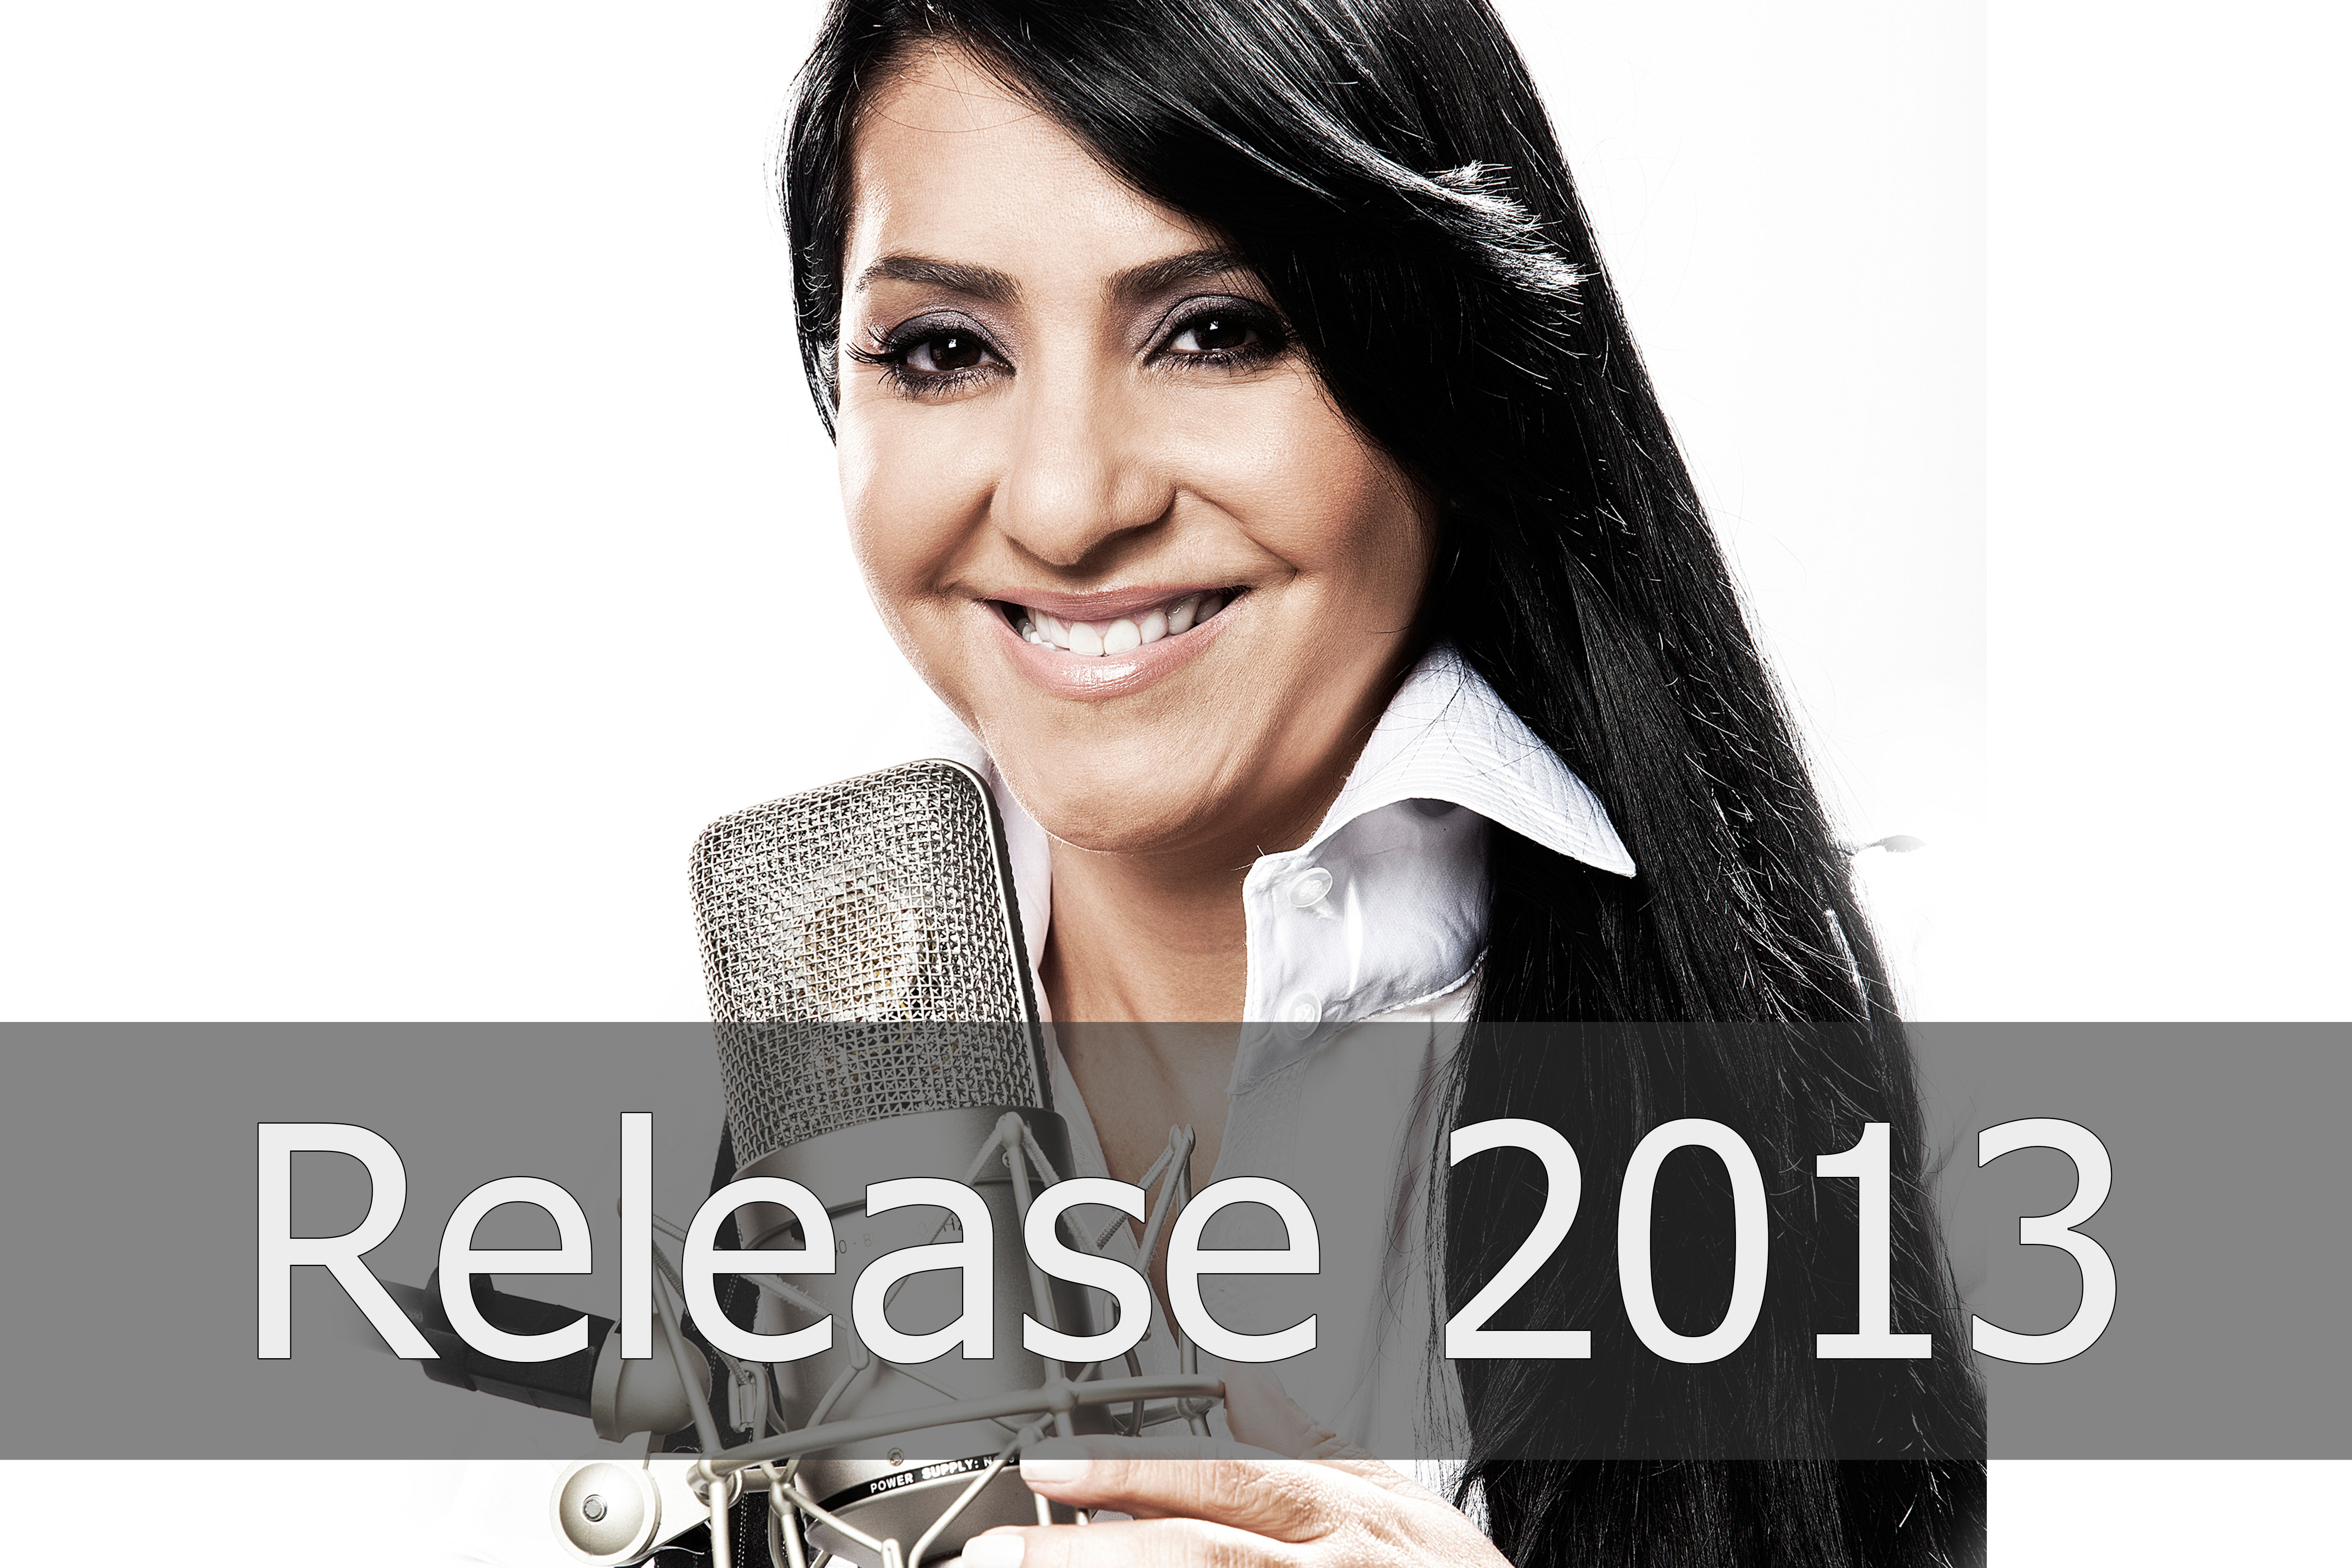 Release 2013